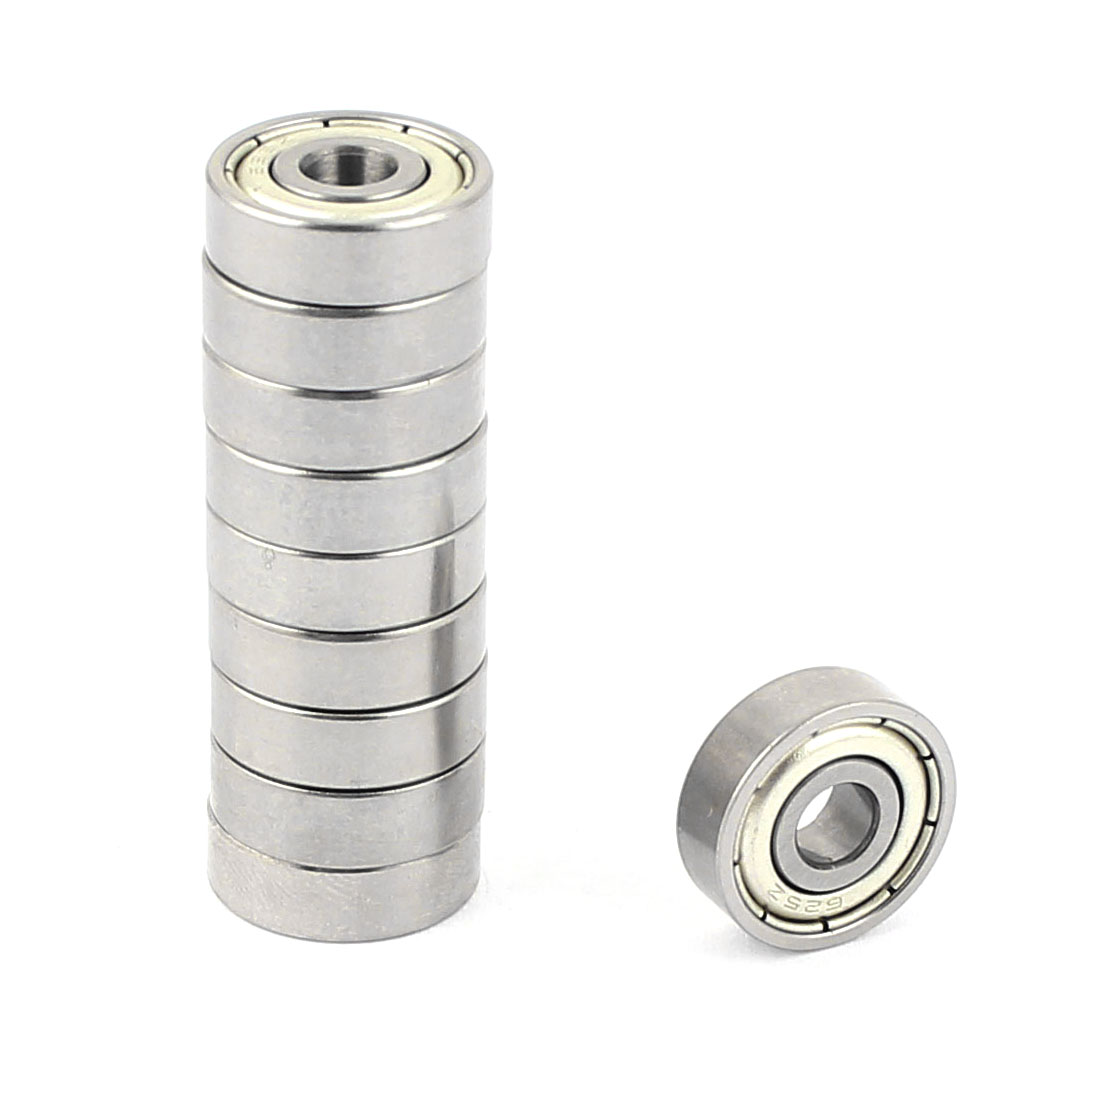 10 Pcs 5mm x 16mm x 5.5mm Metal Sealed Shielded Deep Groove Ball Bearing